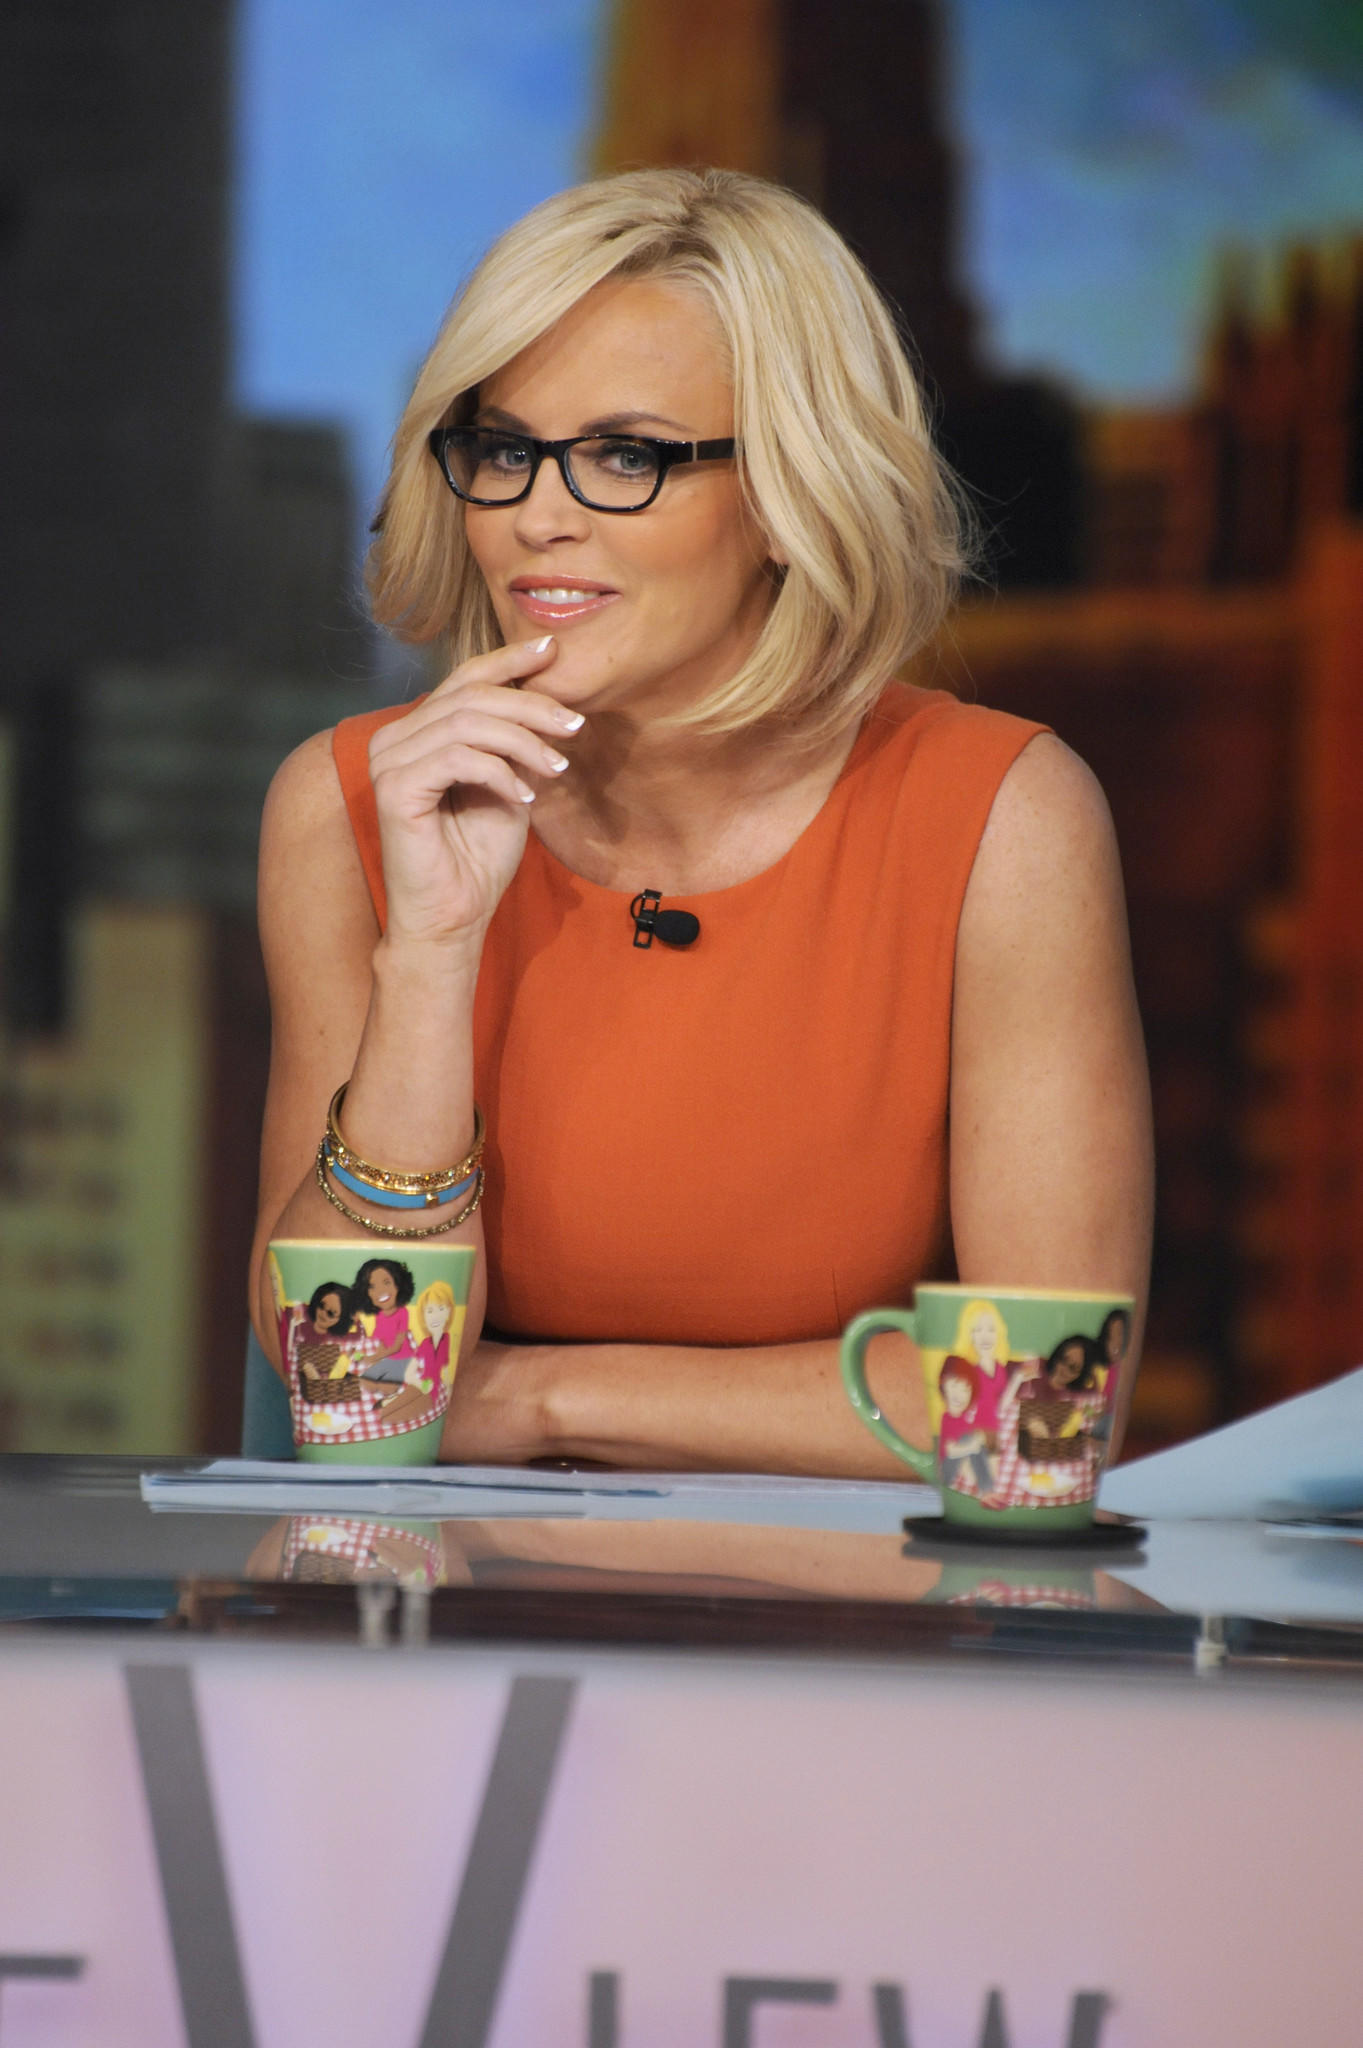 Jenny McCarthy announced today that she will be leaving 'The View'.